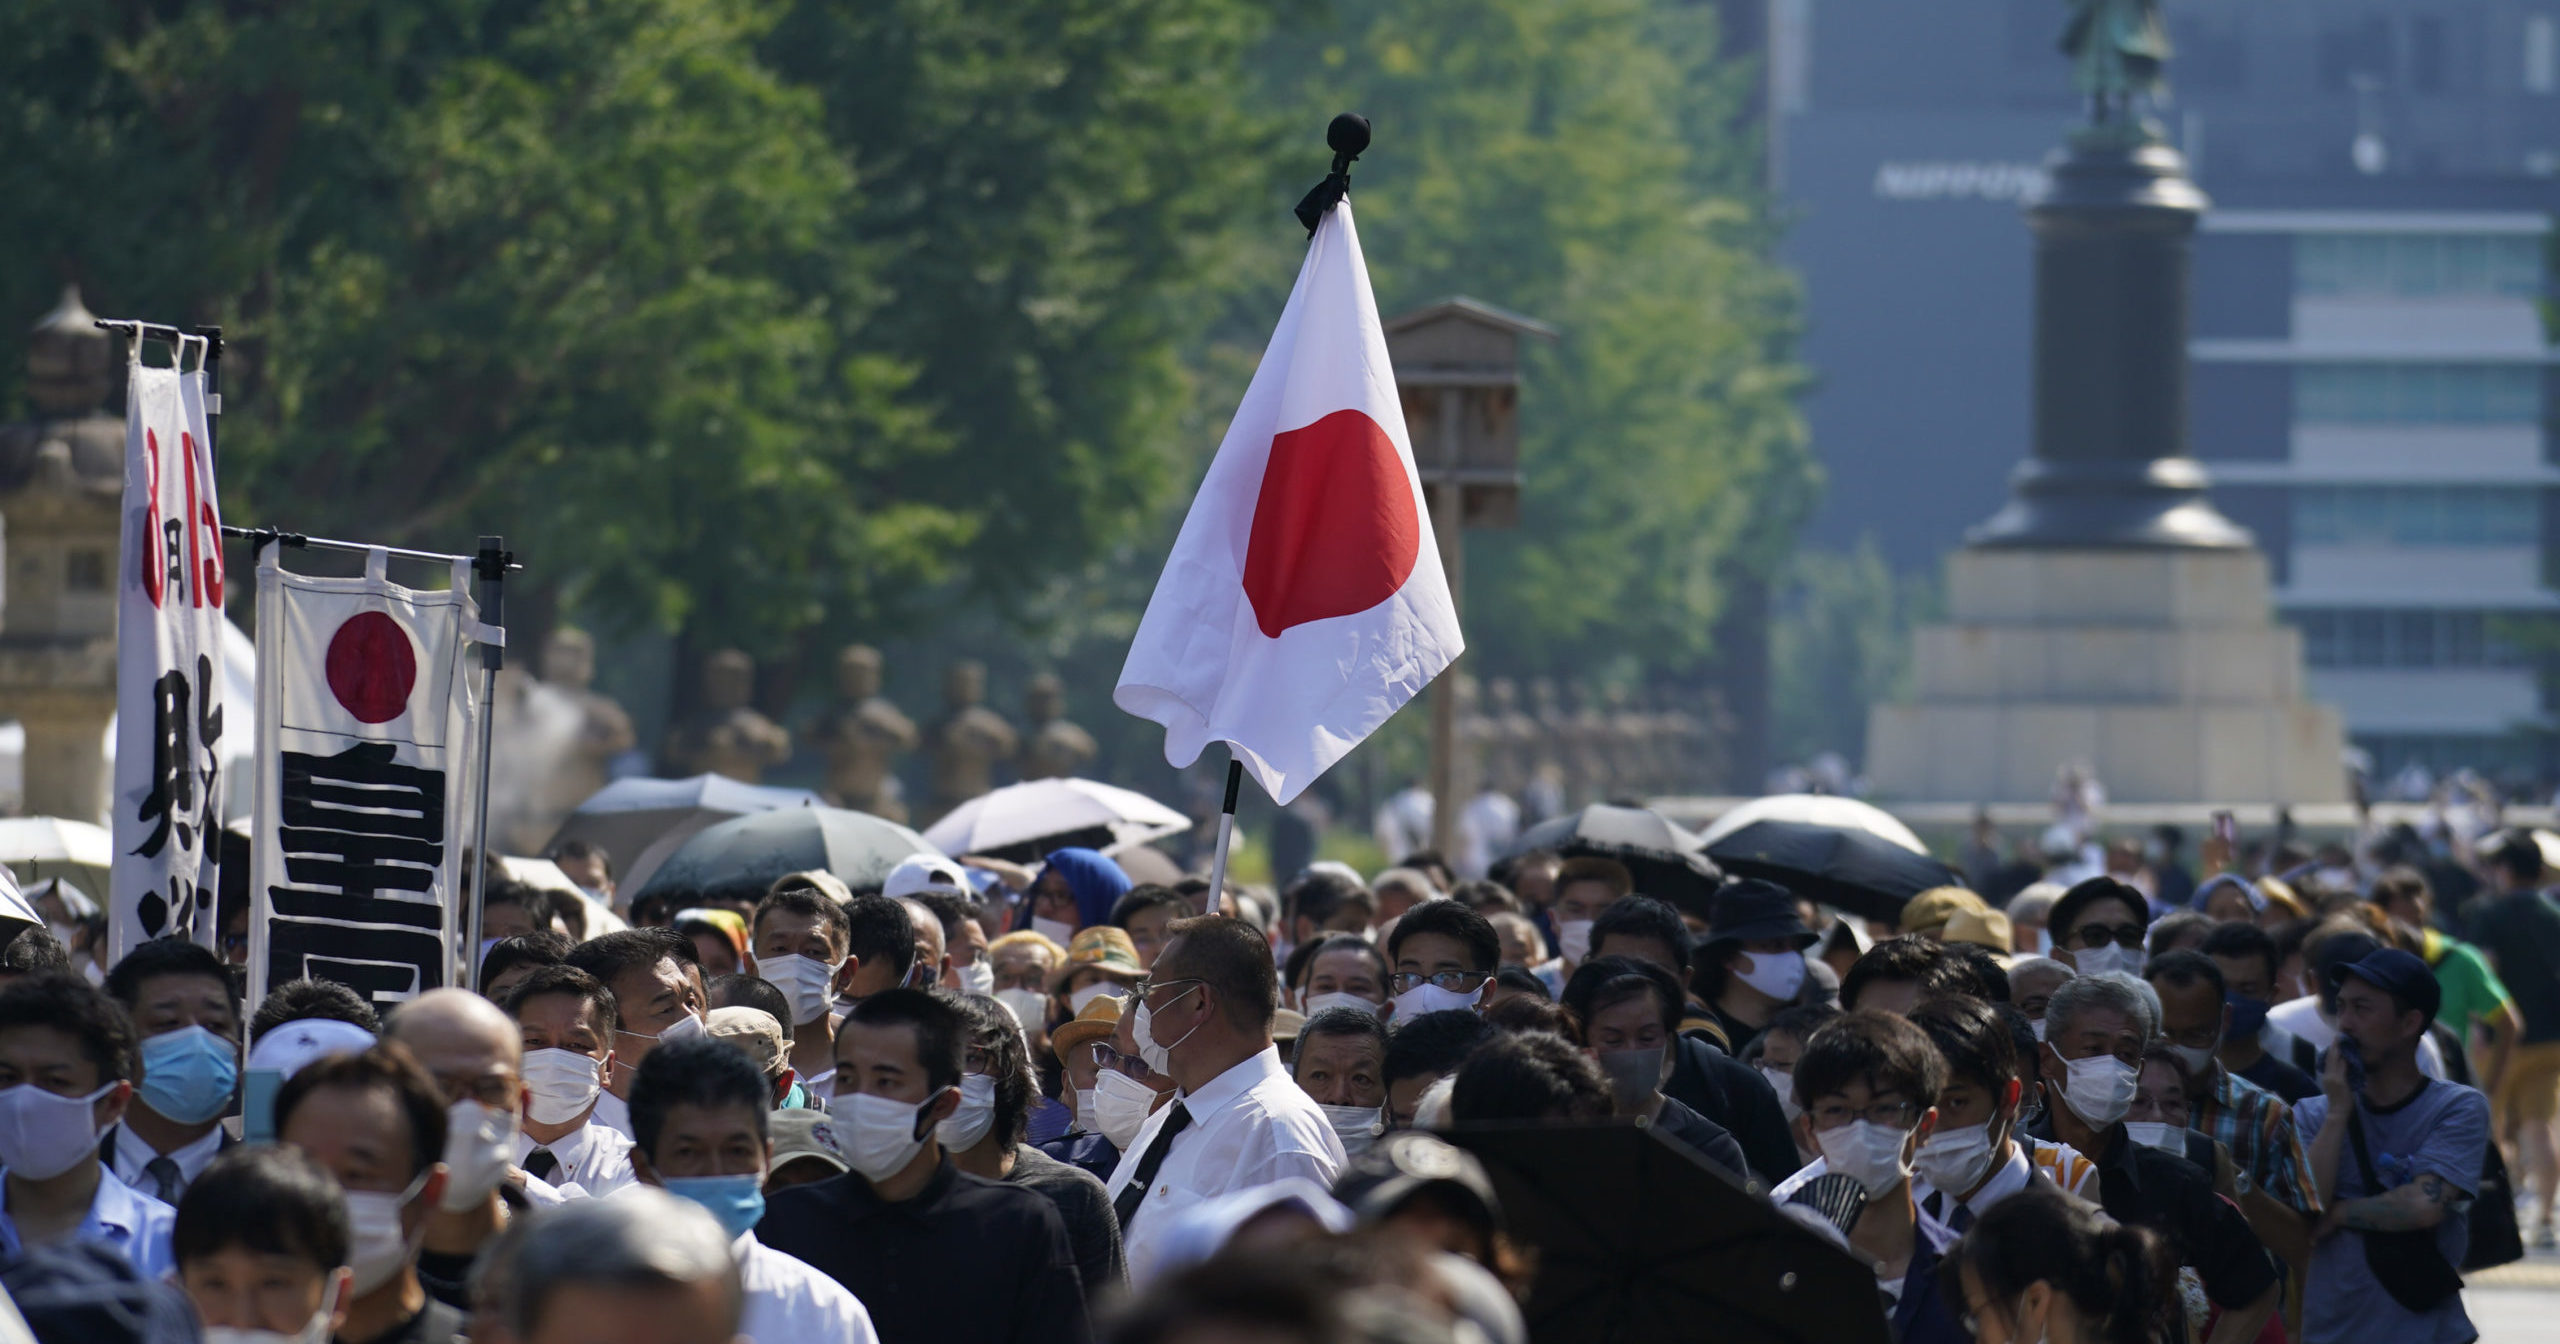 Worshippers queue to pay respects to the war dead at a shrine on Aug. 15, 2020, in Tokyo. Japan marked the 75th anniversary of the end of World War II.